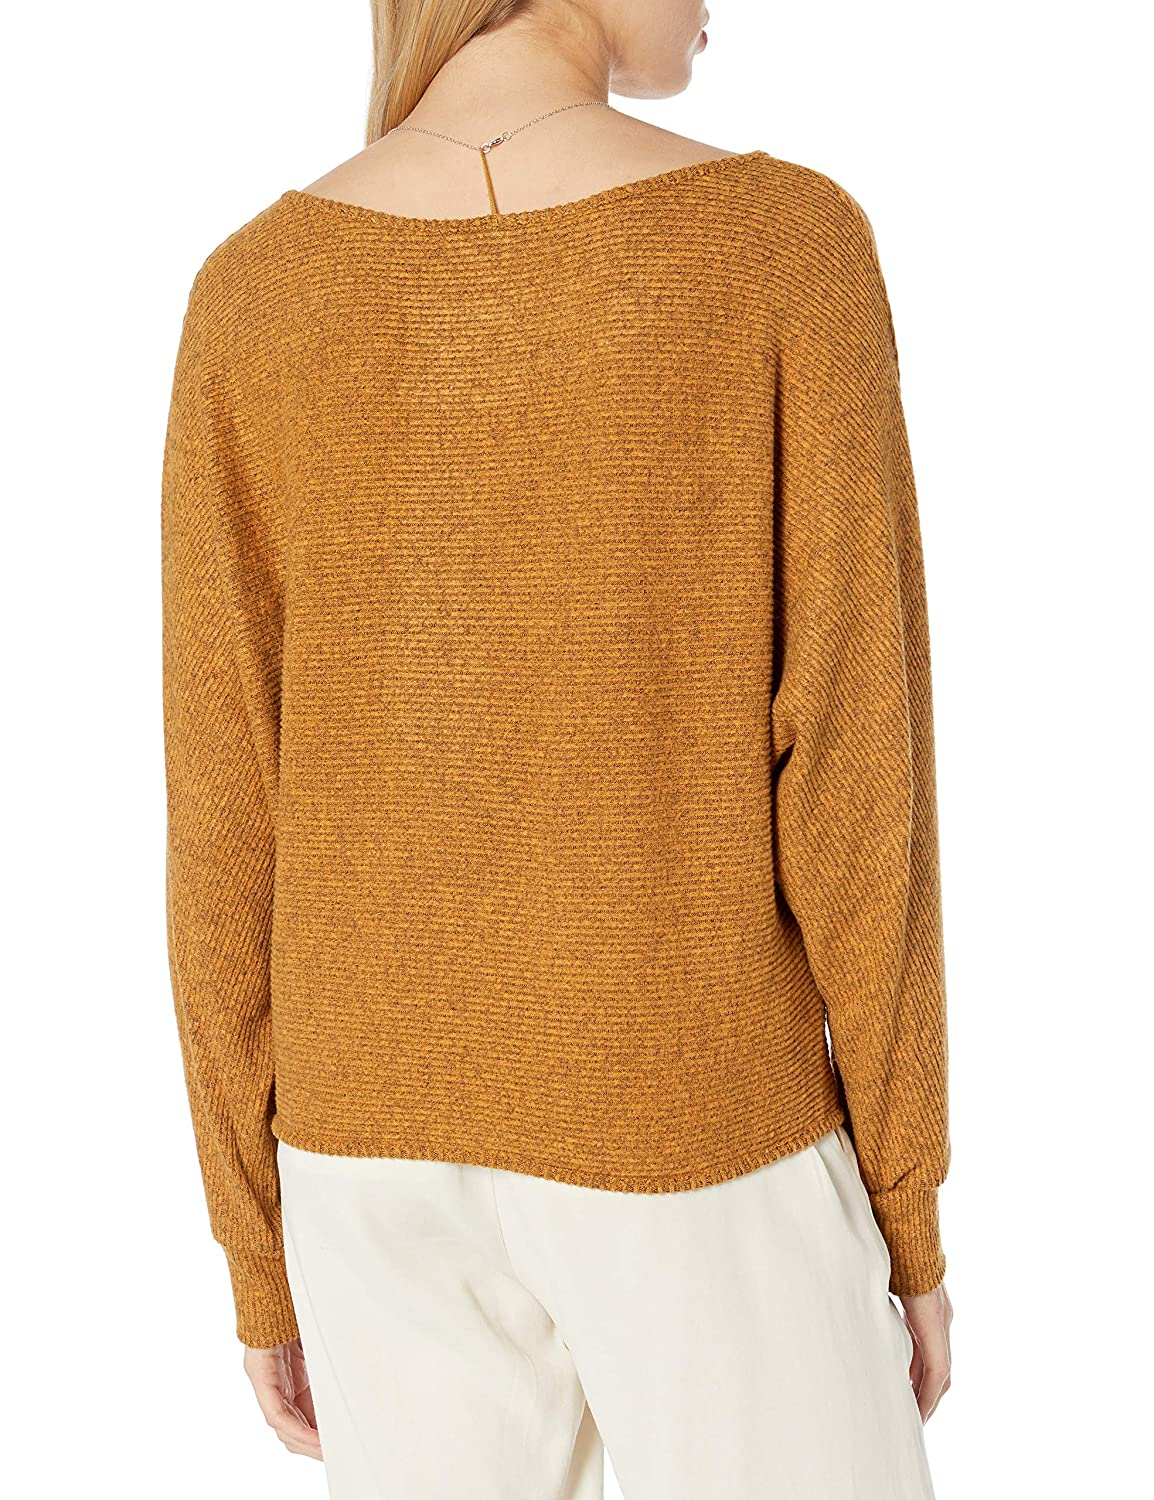 Byer Womens Cropped Dolman Sleeve Pullover Top A